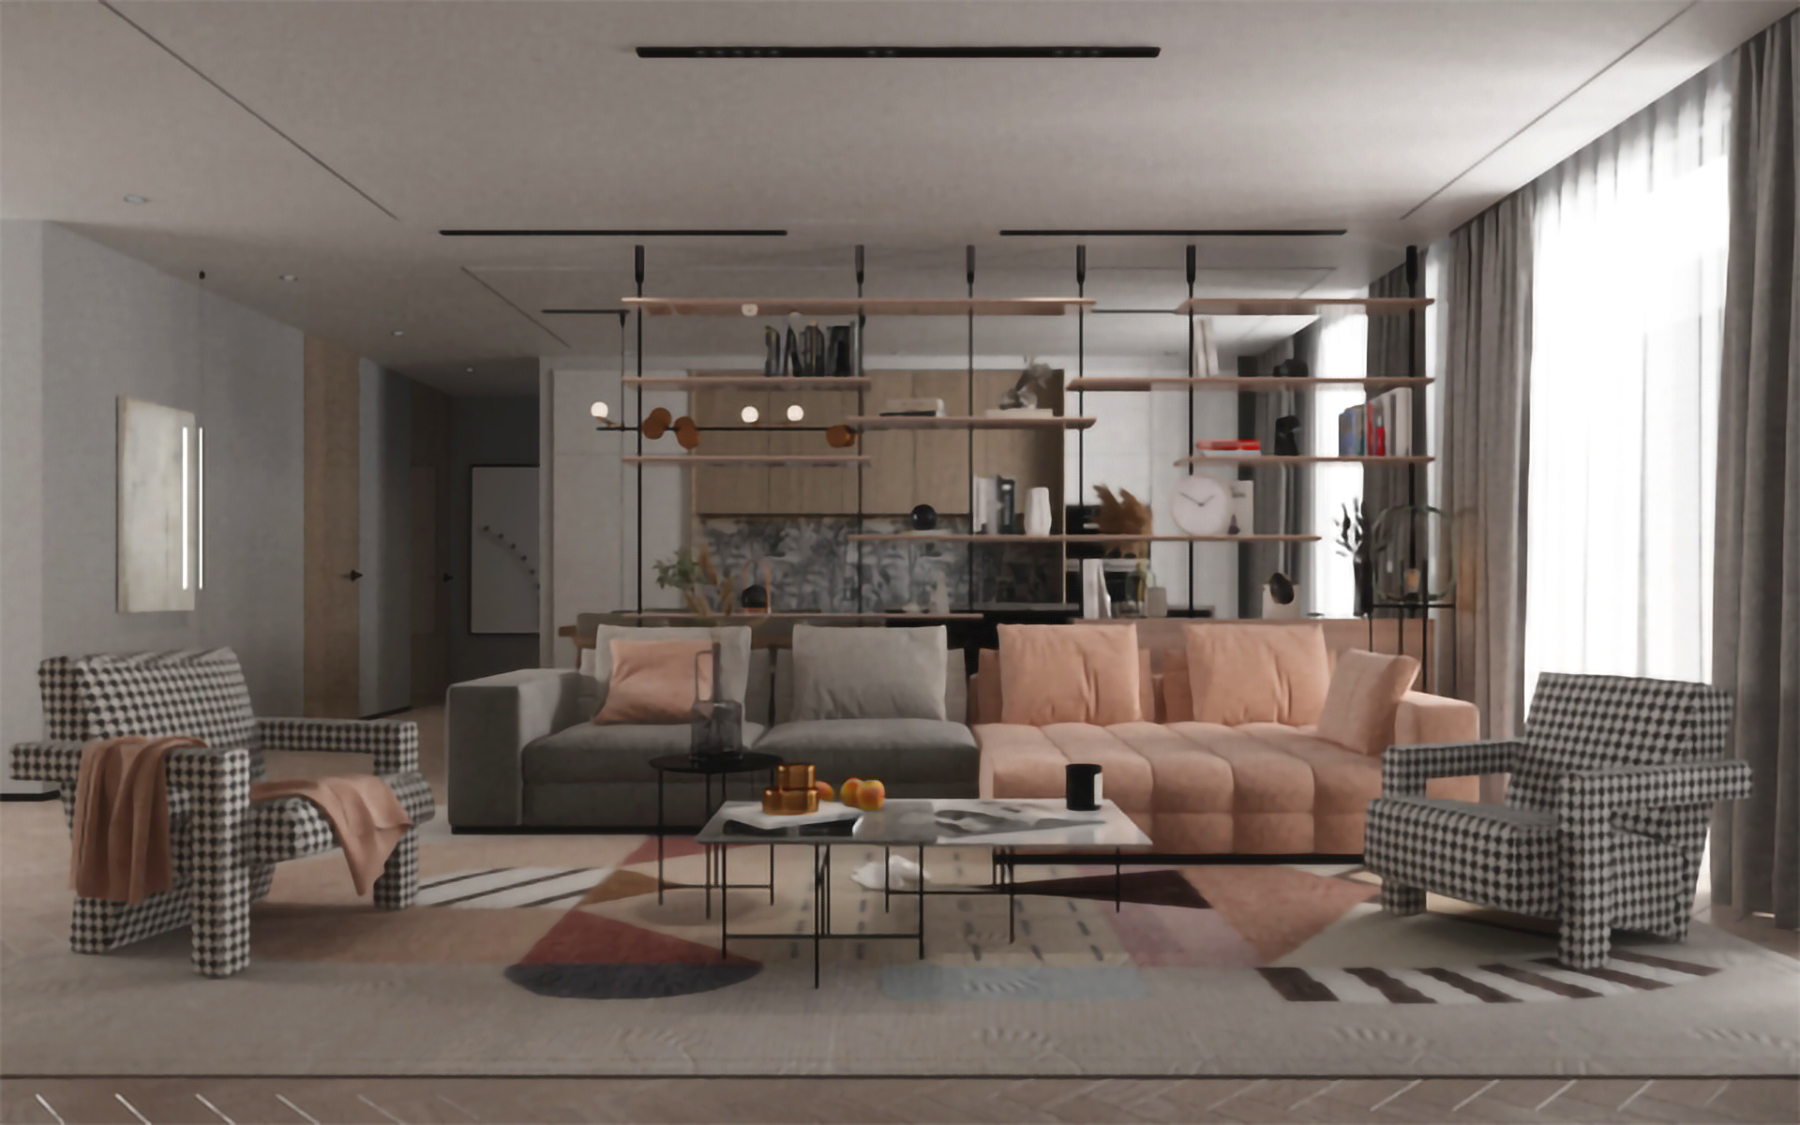 ISGMD - interior design render 3D progetto interni